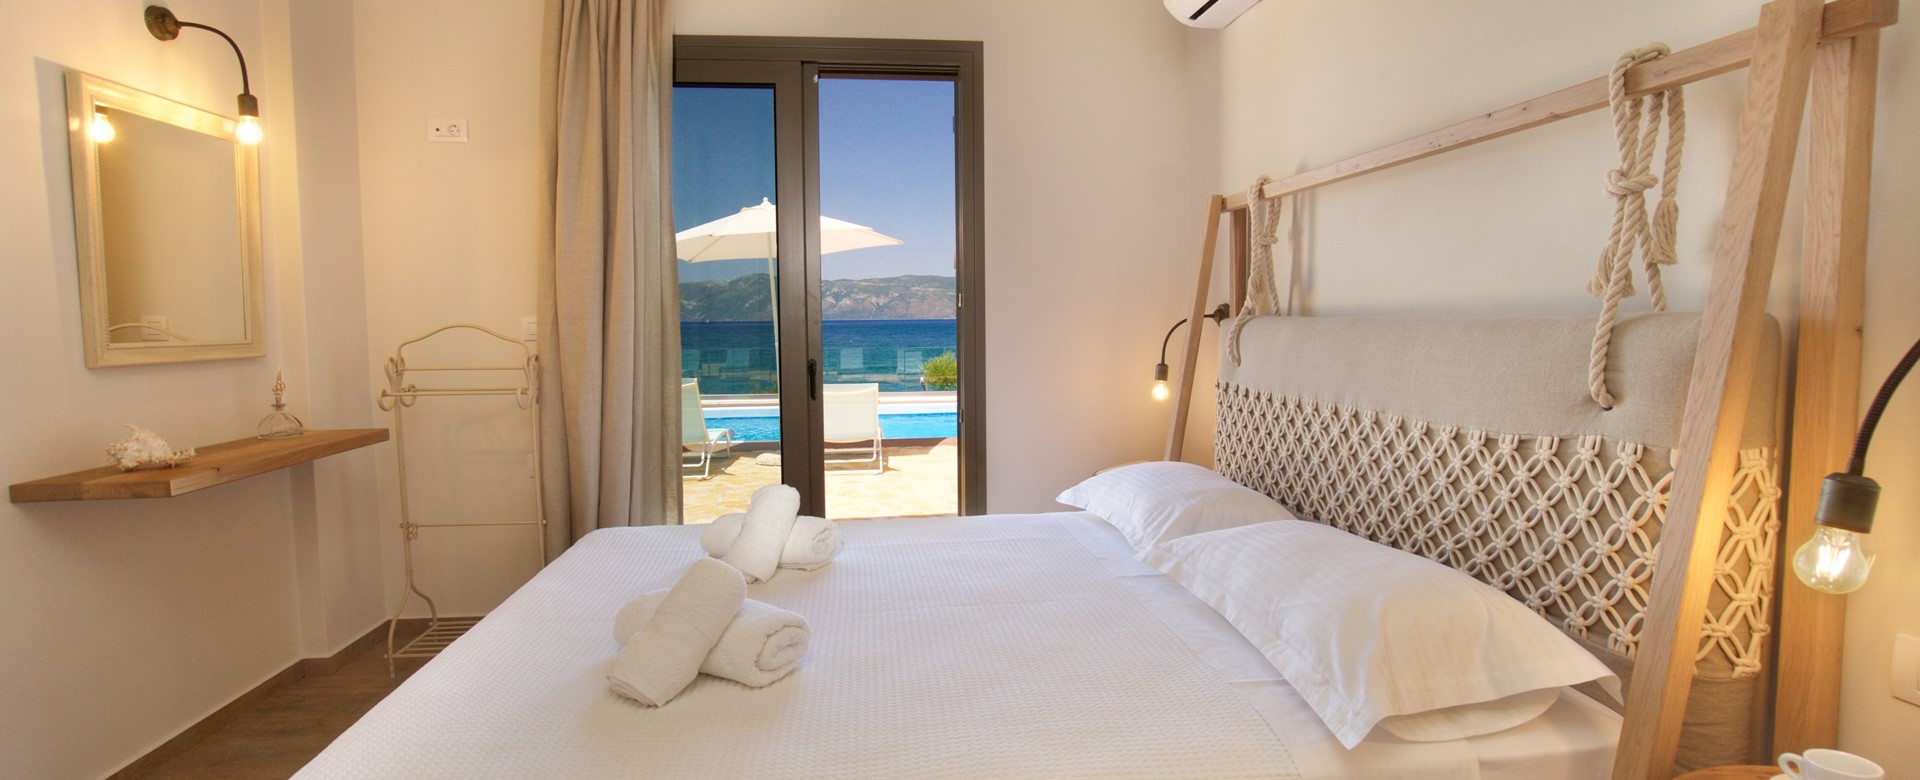 Comfortable large double bed with a view inside Villa Frydi, Karavomilos, Kefalonia, Greek Islands